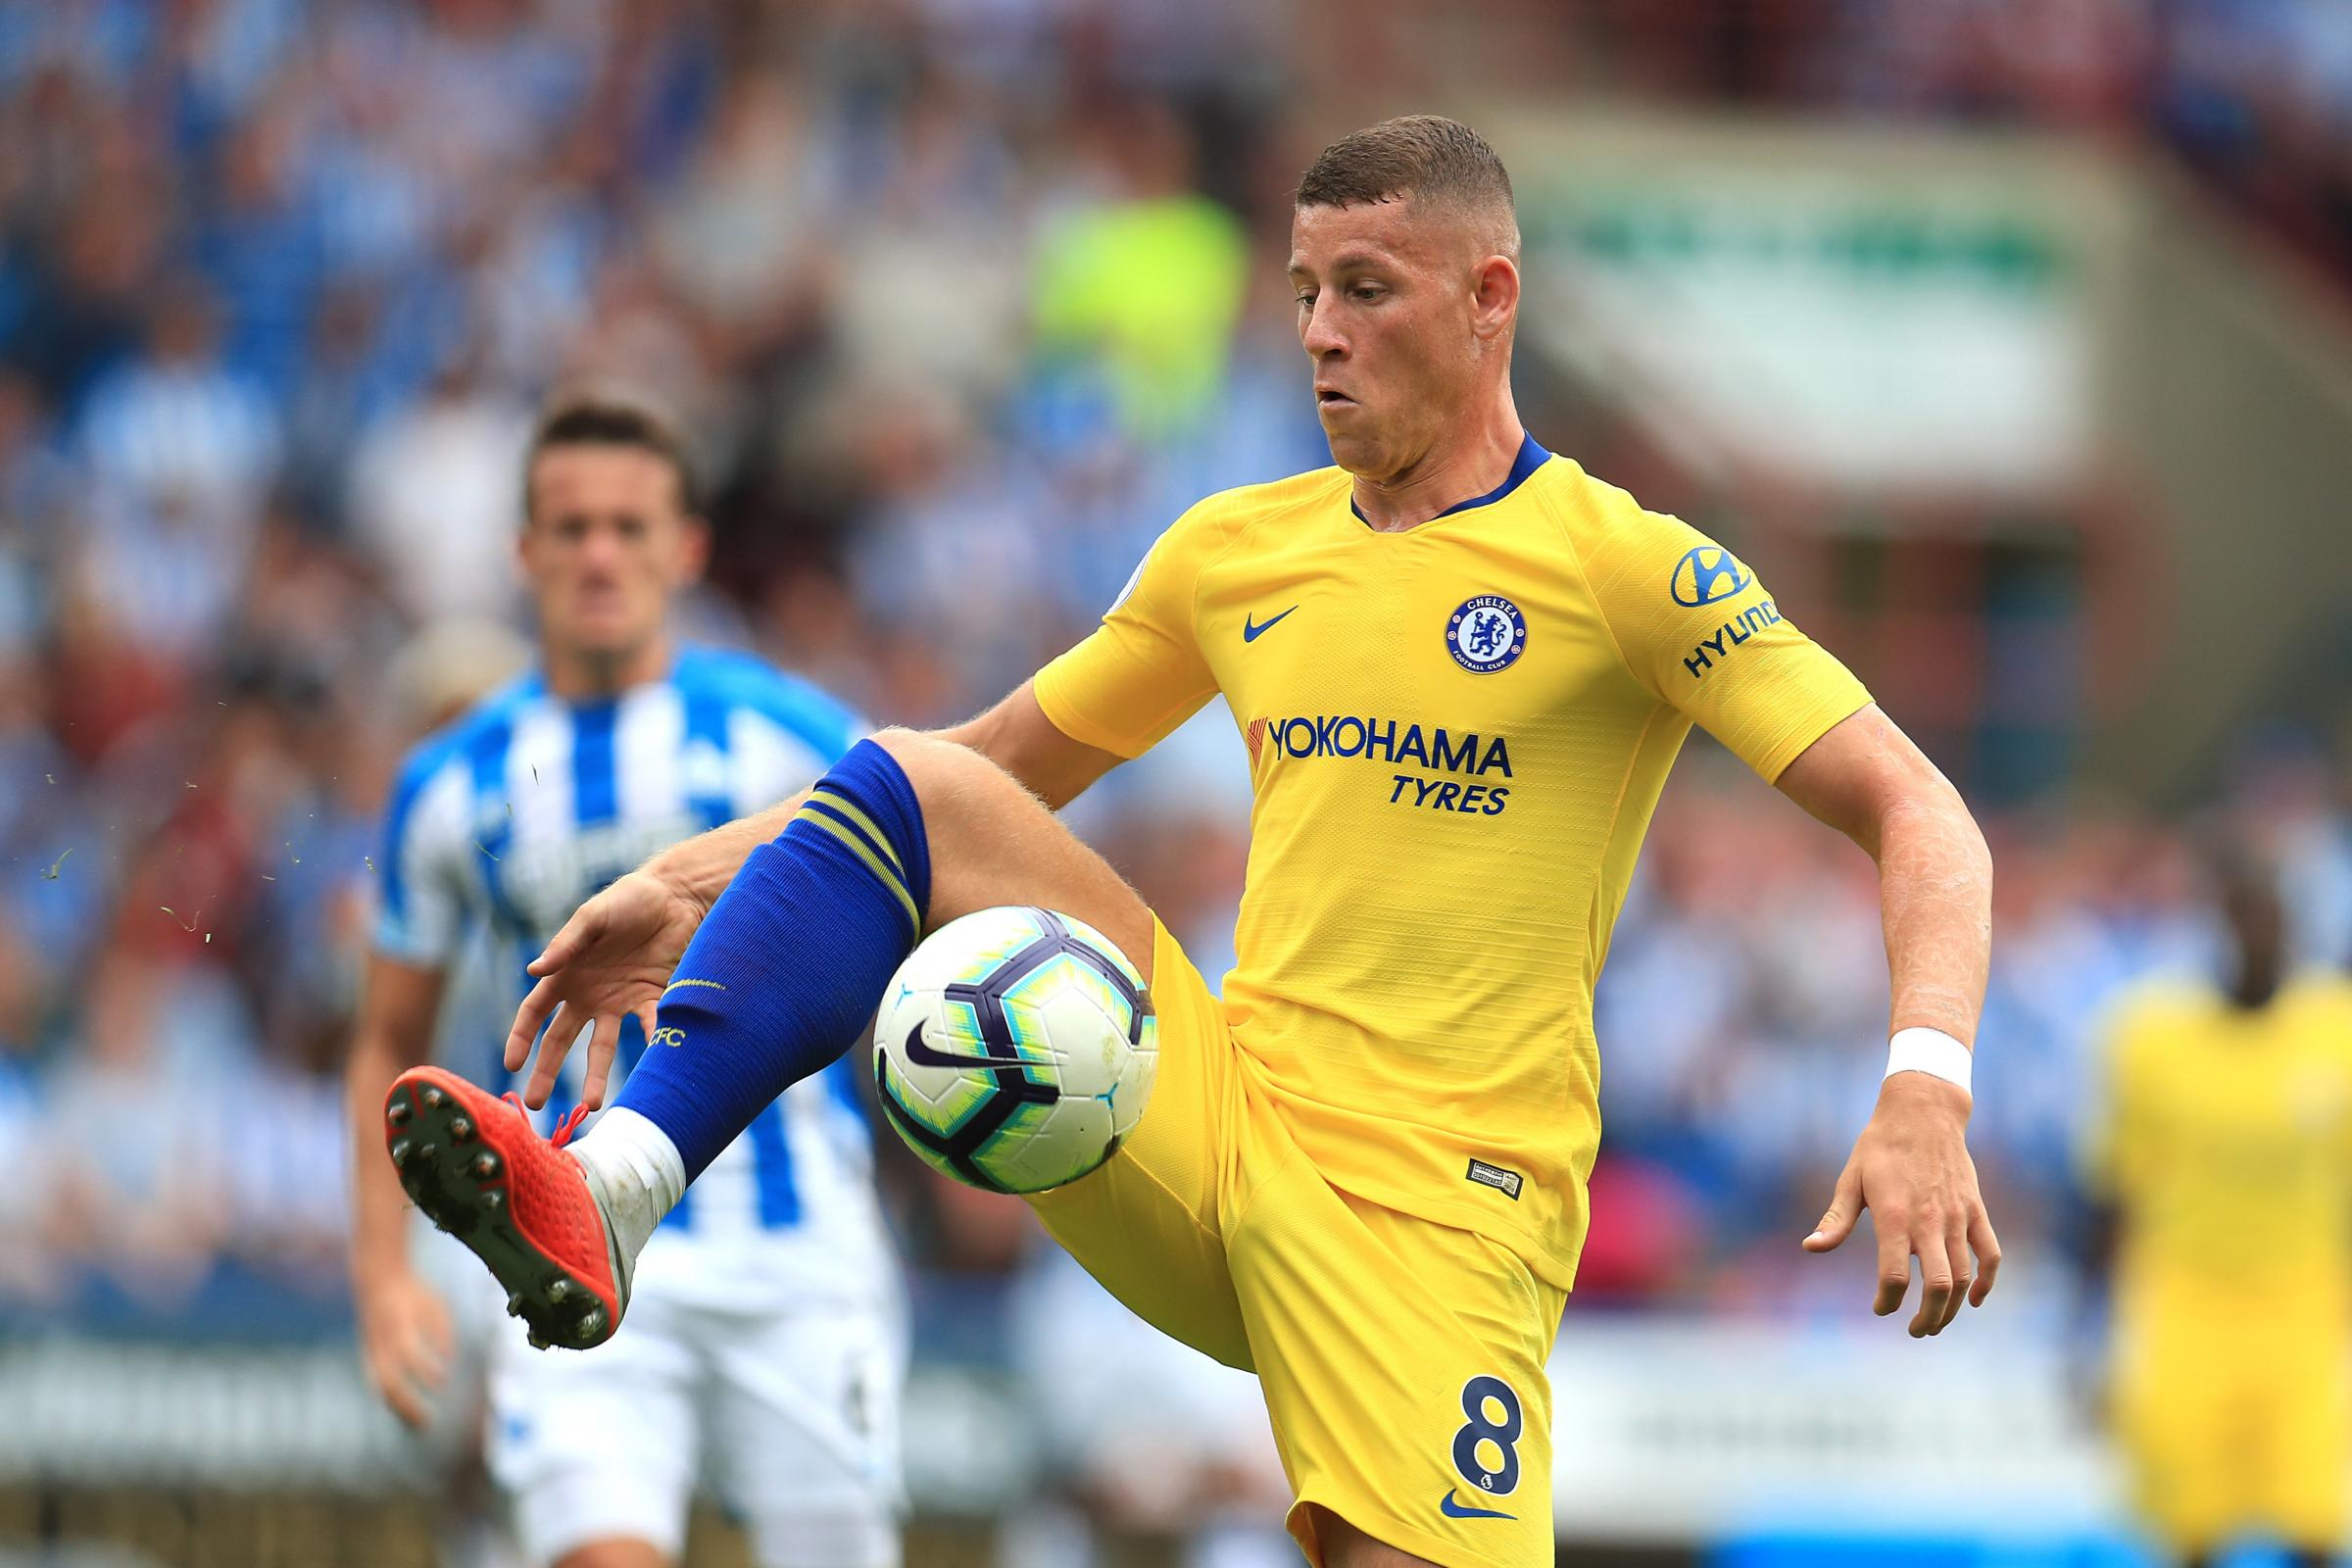 Ross Barkley attributes his improvement at Chelsea to Maurizio Sarri's coaching